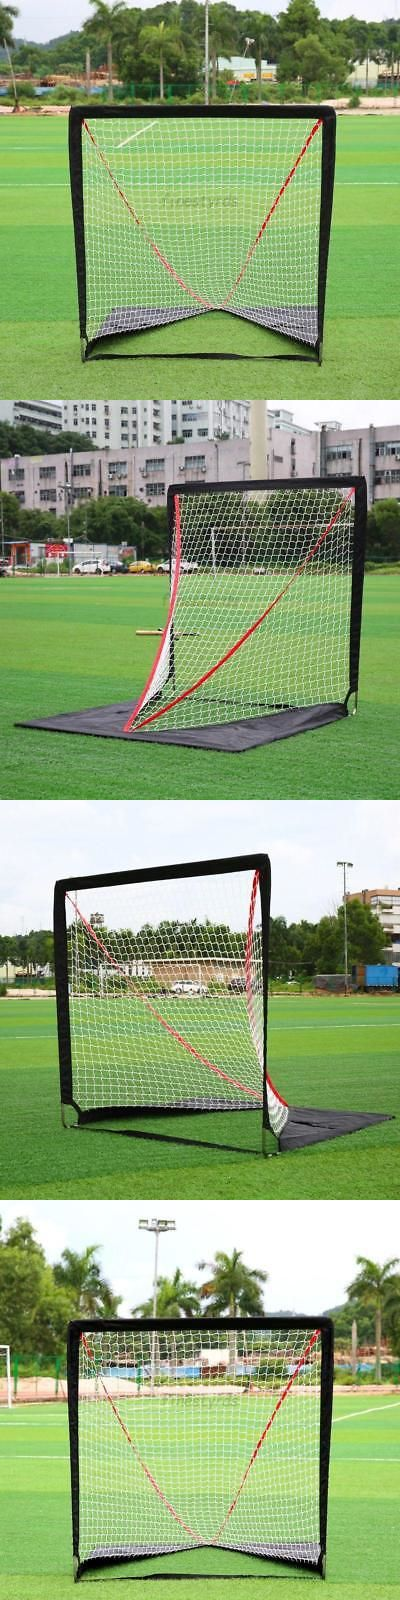 Goals and Nets 165936: Portable Convenient Pro Roller Hockey-Net Practice Net Folding Foldable Outdoor -> BUY IT NOW ONLY: $84.67 on eBay!